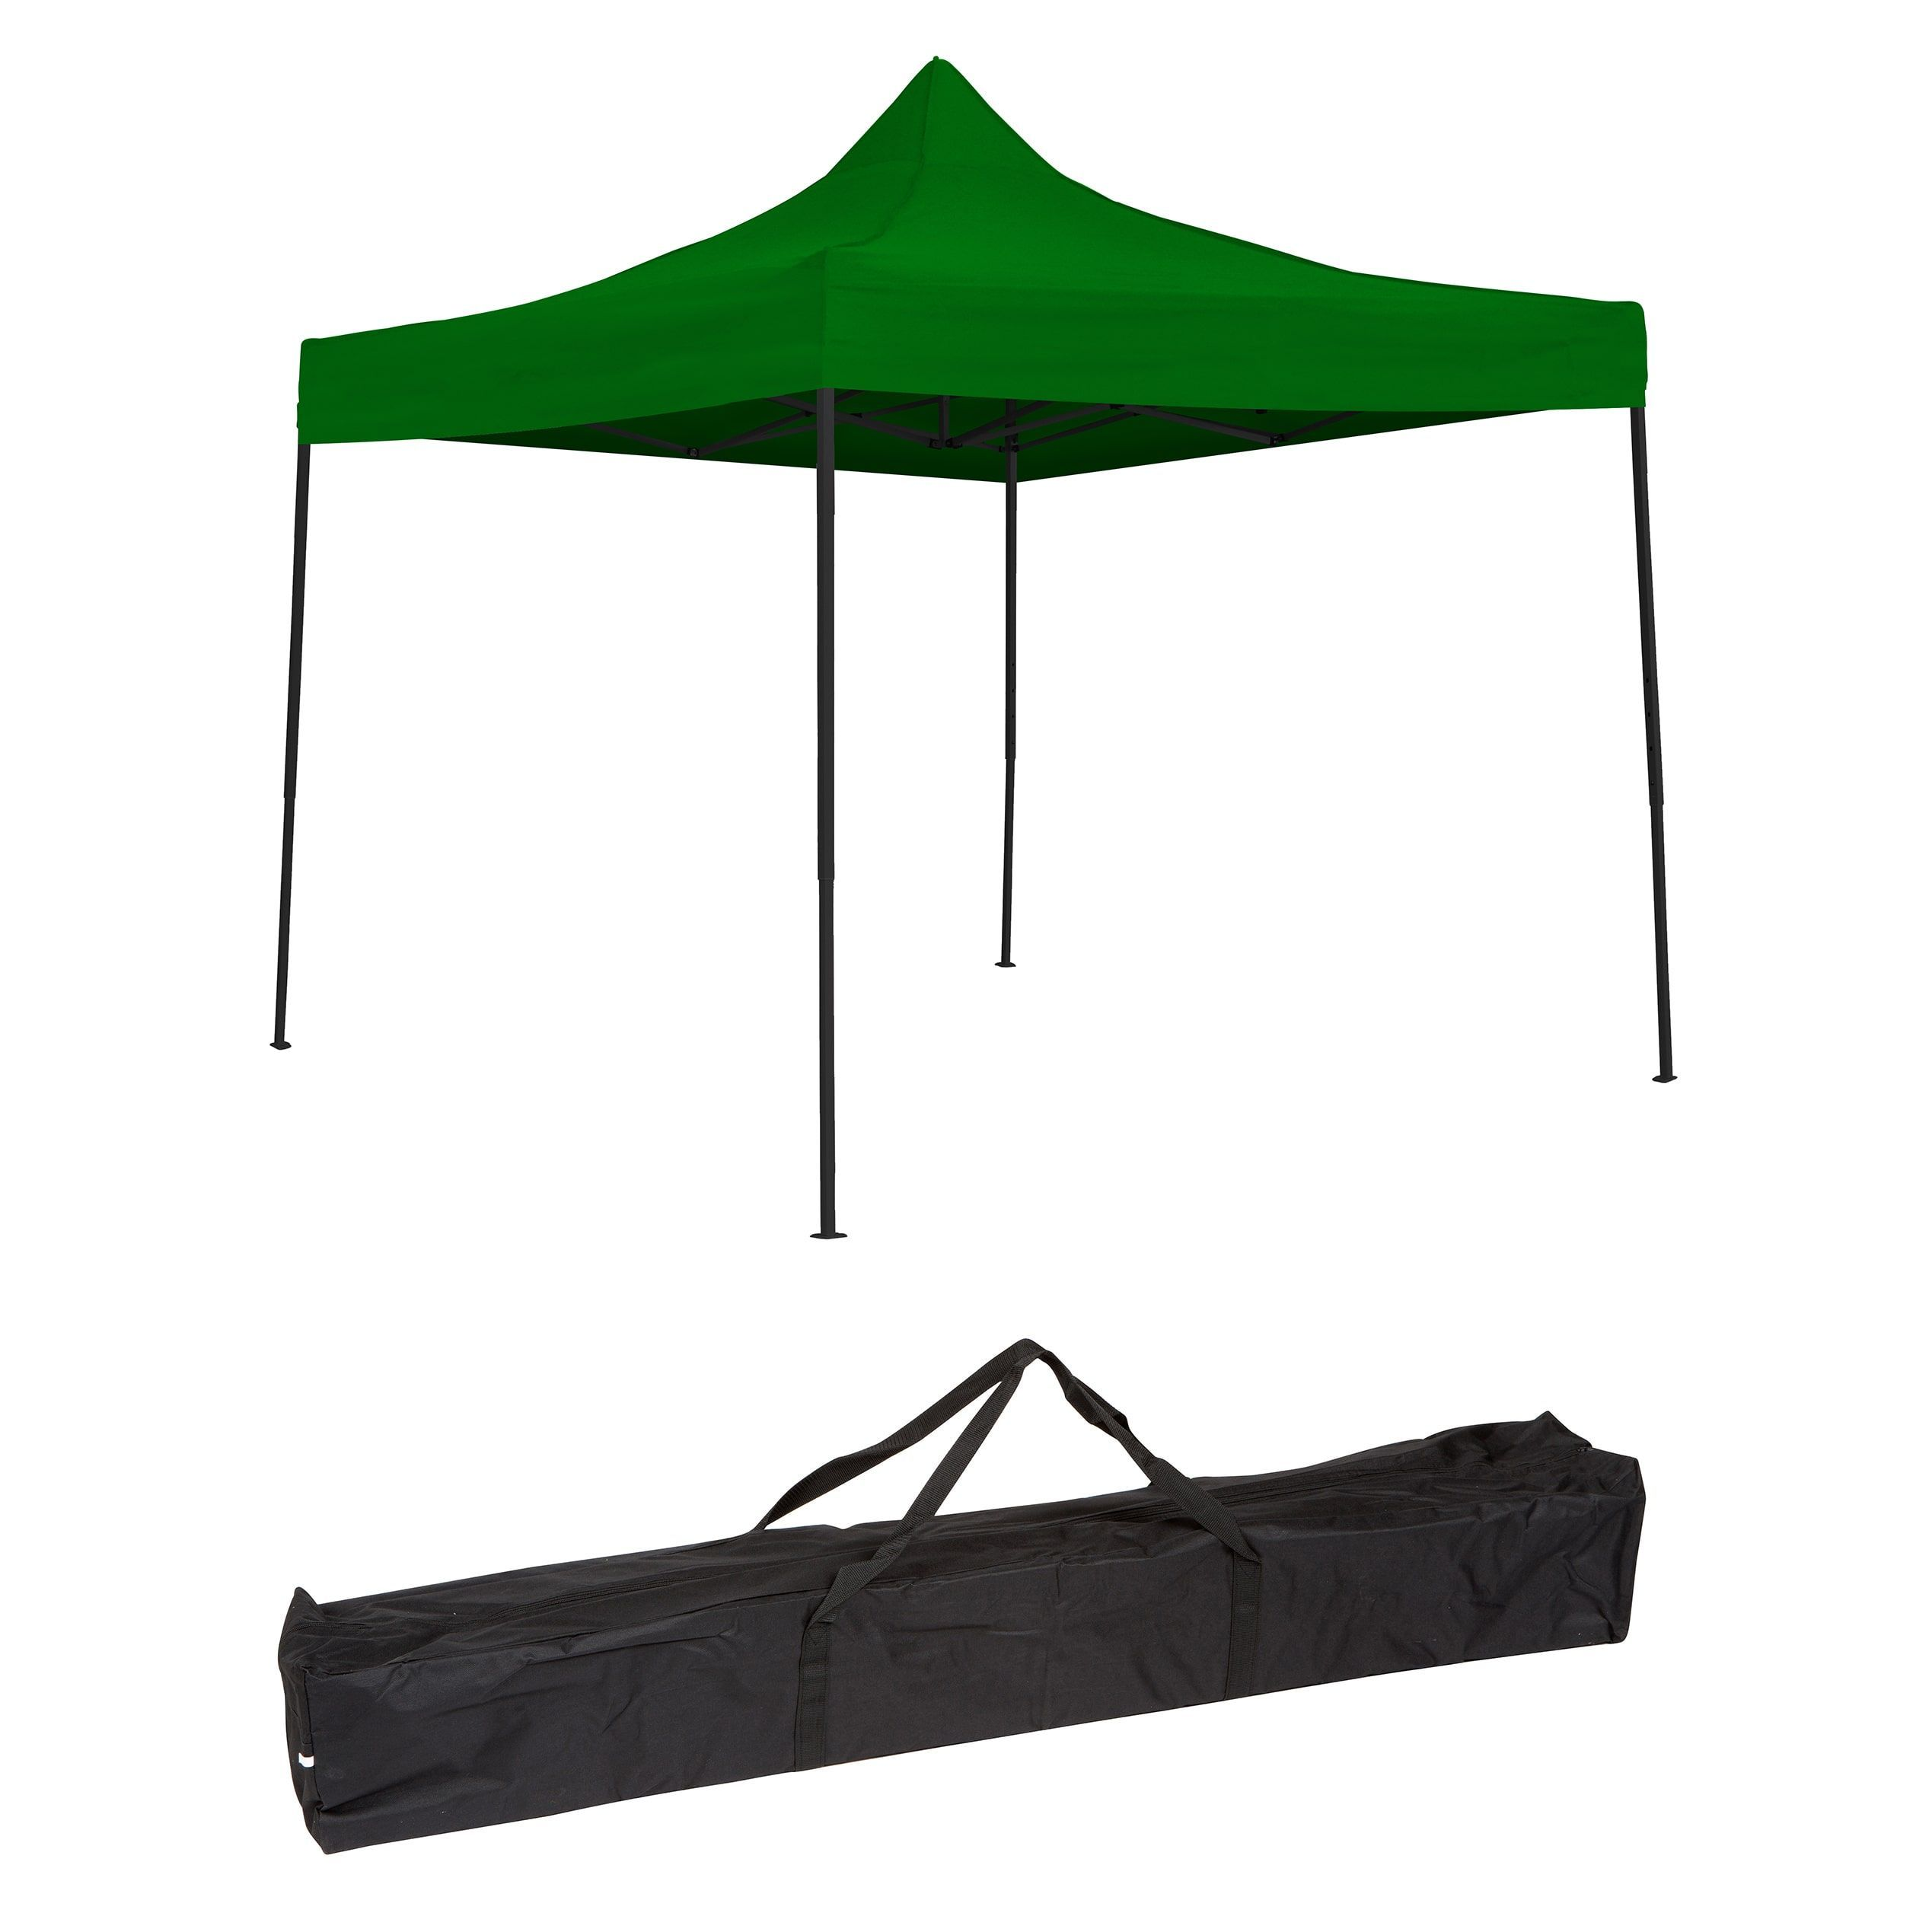 Trademark Innovations 10-foot Lightweight and Portable Canopy Tent Set #10FTCAN-GRN  sc 1 st  Pinterest & Trademark Innovations 10-foot Lightweight and Portable Canopy Tent ...